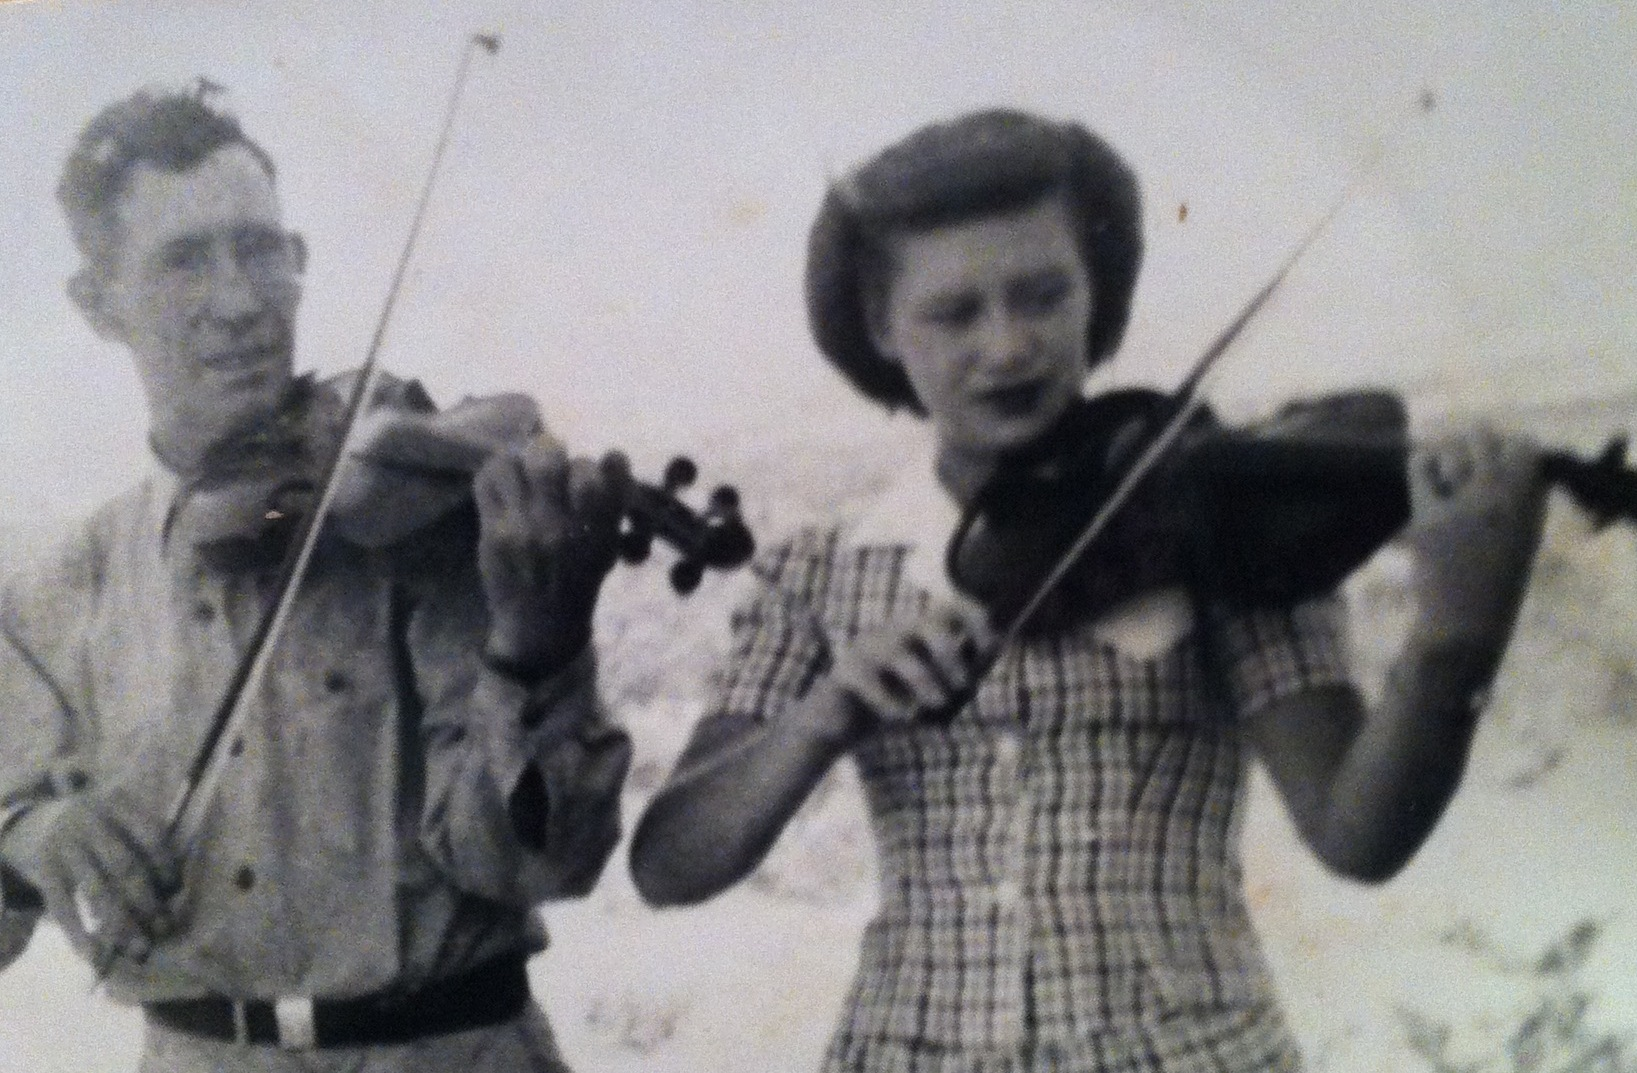 Tom depended on his daughter Jan for backup at dances until she left for college in 1947. They also enjoyed twin fiddling on hymns.